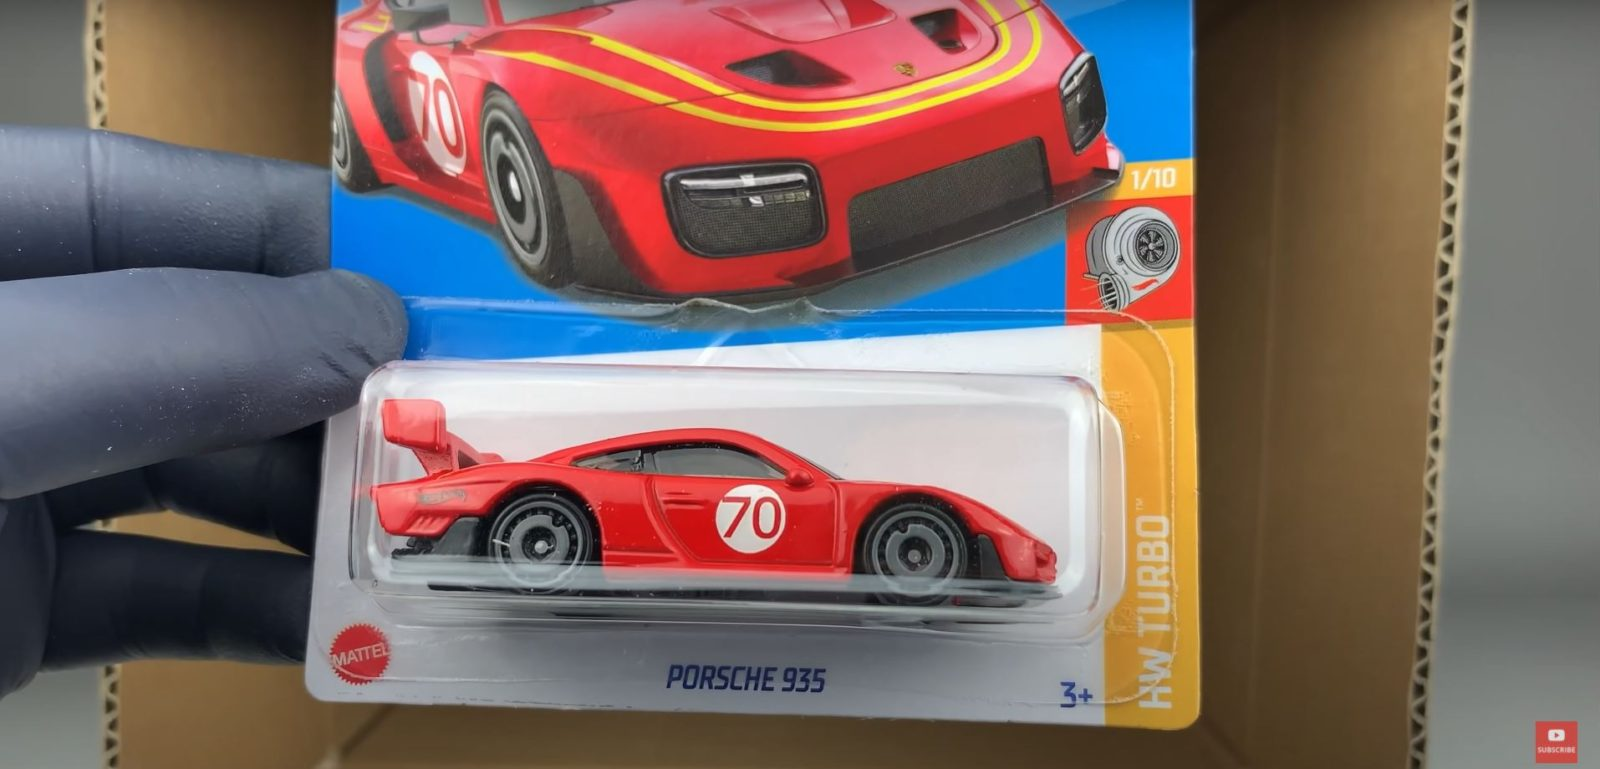 inside-the-first-2022-hot-wheels-case,-new-cars-revealed